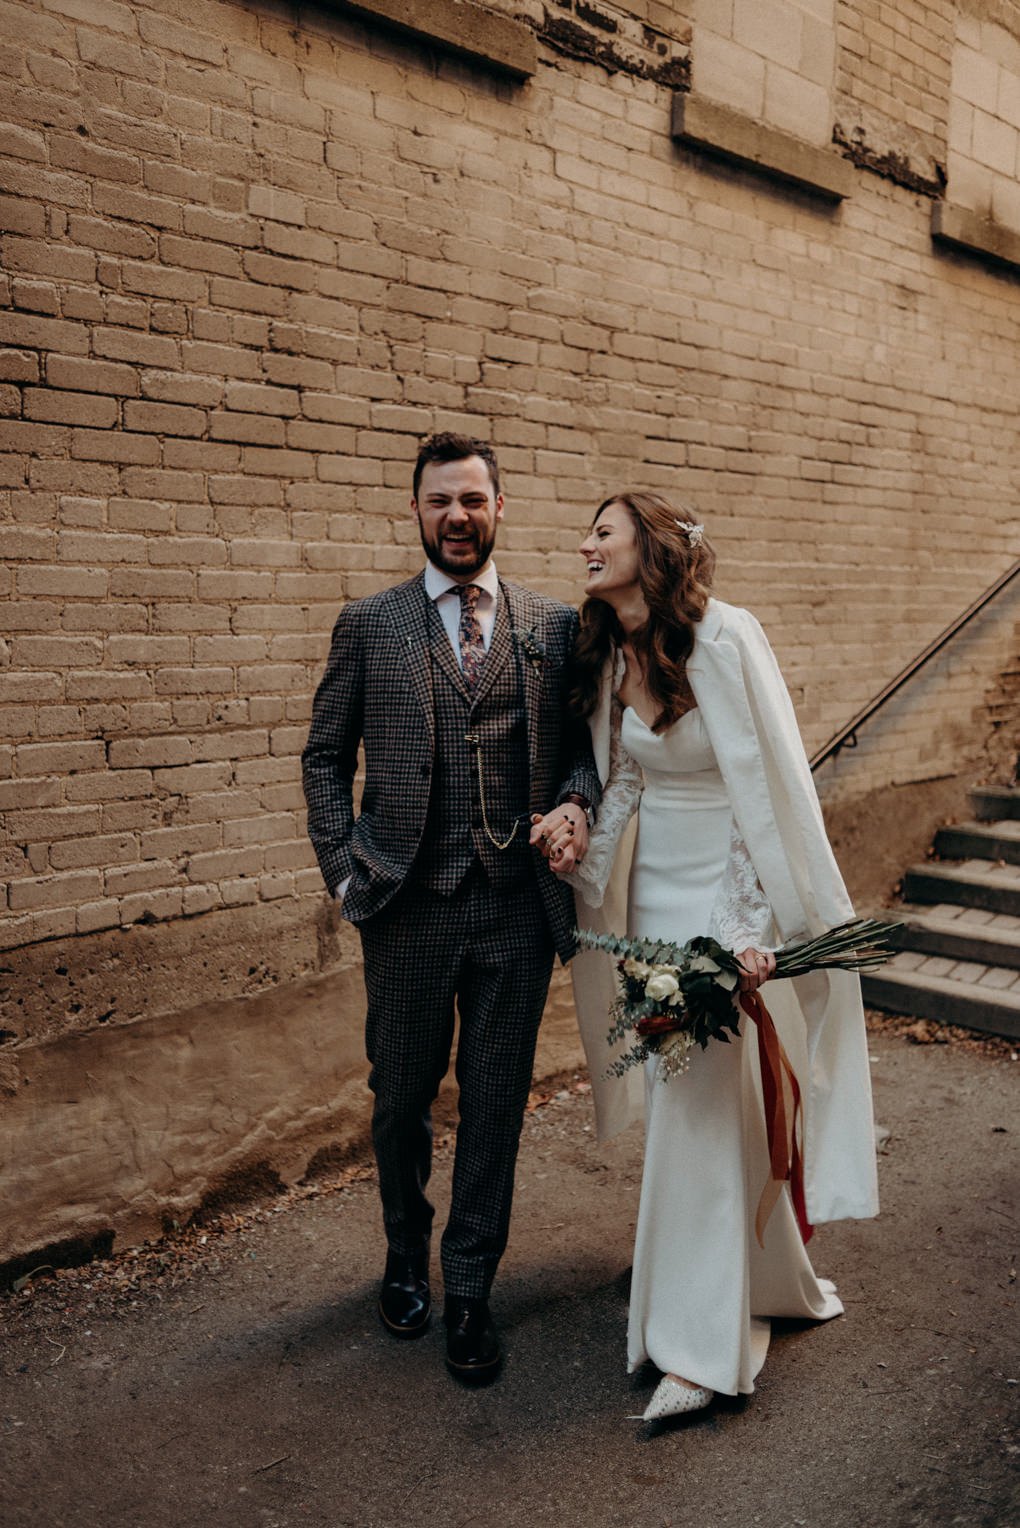 bride and groom walking and laughing in alleyway in Toronto